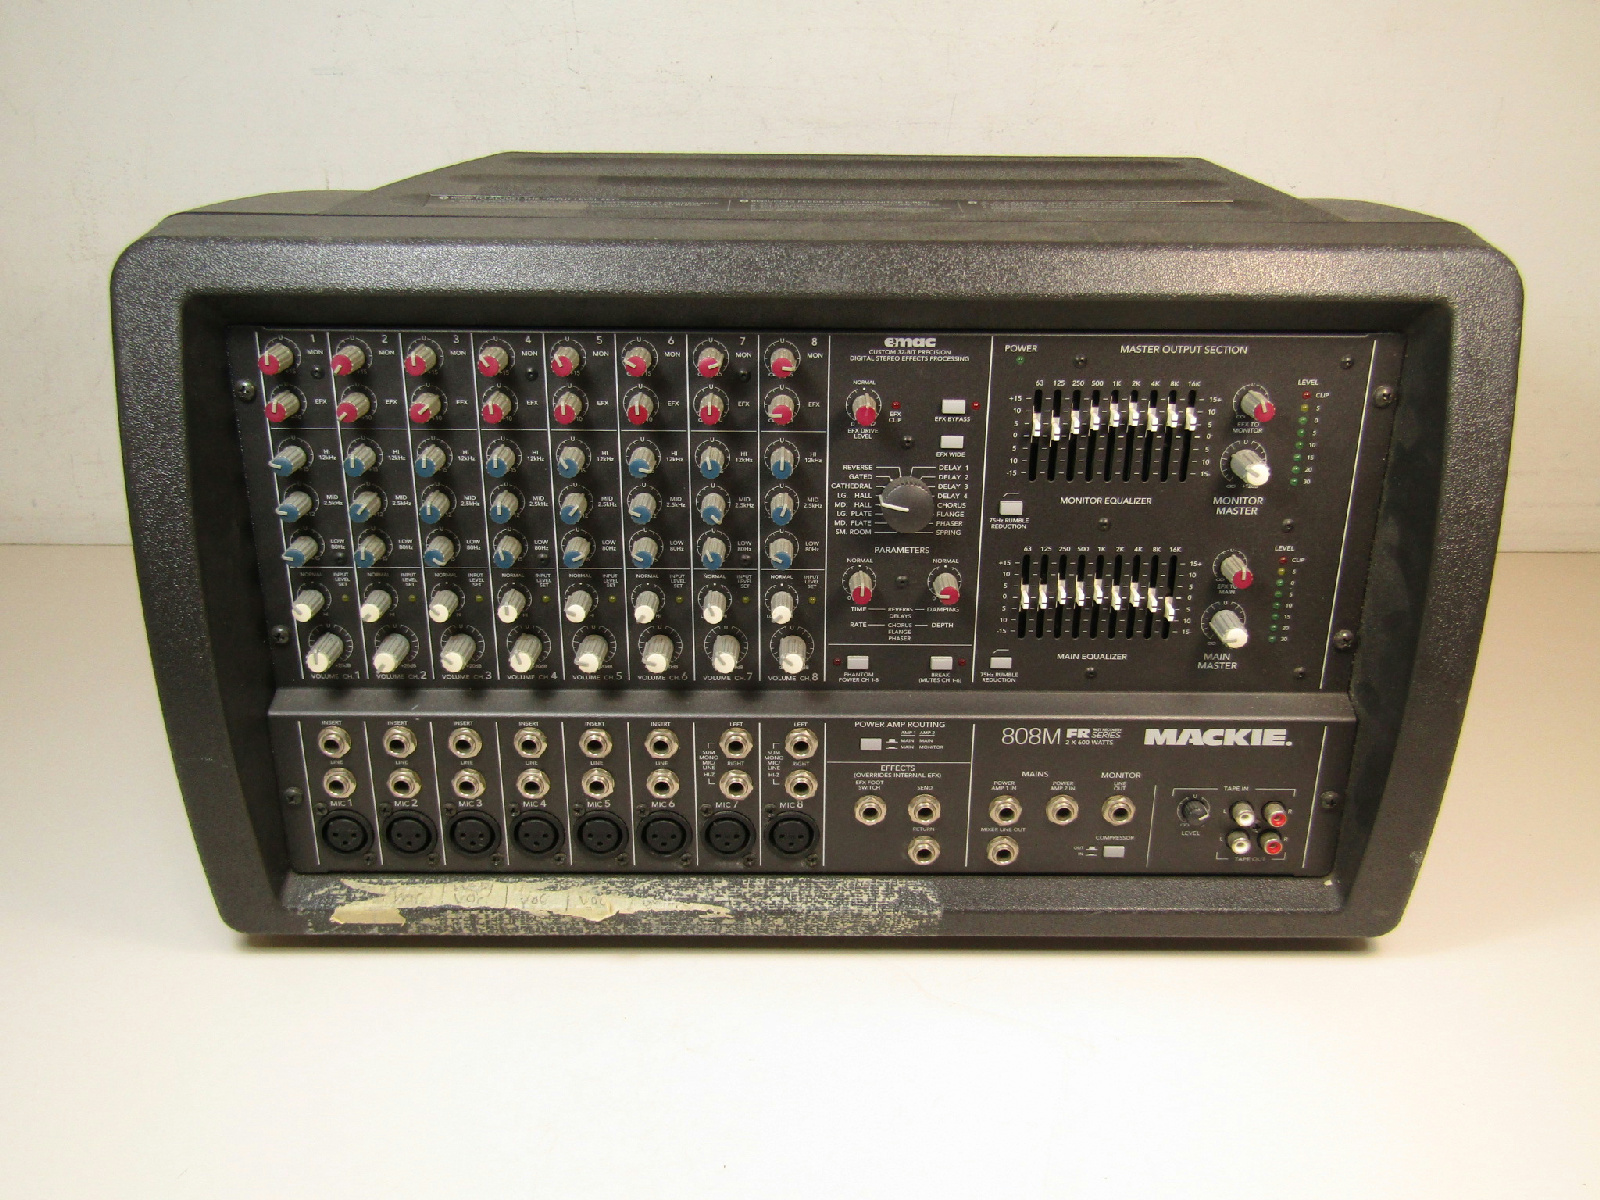 mackie 808m 1200 watt powered pa mixer 8 channel tested ebay. Black Bedroom Furniture Sets. Home Design Ideas